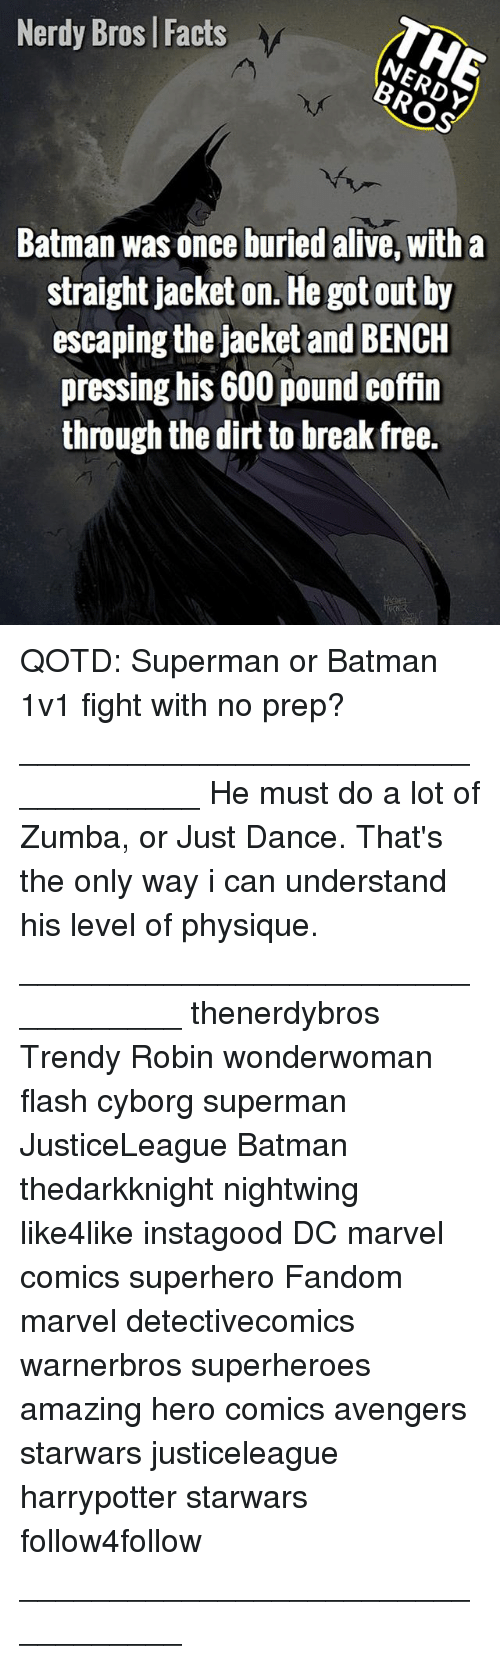 just dance: Nerdy Bros | Facts  Batman was once buried alive, with a  straight jacket on. He got out by  escaping the jacket and BENCH  pressing his 600 pound coffin  through the dirt to break free.  큐. QOTD: Superman or Batman 1v1 fight with no prep? ___________________________________ He must do a lot of Zumba, or Just Dance. That's the only way i can understand his level of physique. __________________________________ thenerdybros Trendy Robin wonderwoman flash cyborg superman JusticeLeague Batman thedarkknight nightwing like4like instagood DC marvel comics superhero Fandom marvel detectivecomics warnerbros superheroes amazing hero comics avengers starwars justiceleague harrypotter starwars follow4follow __________________________________